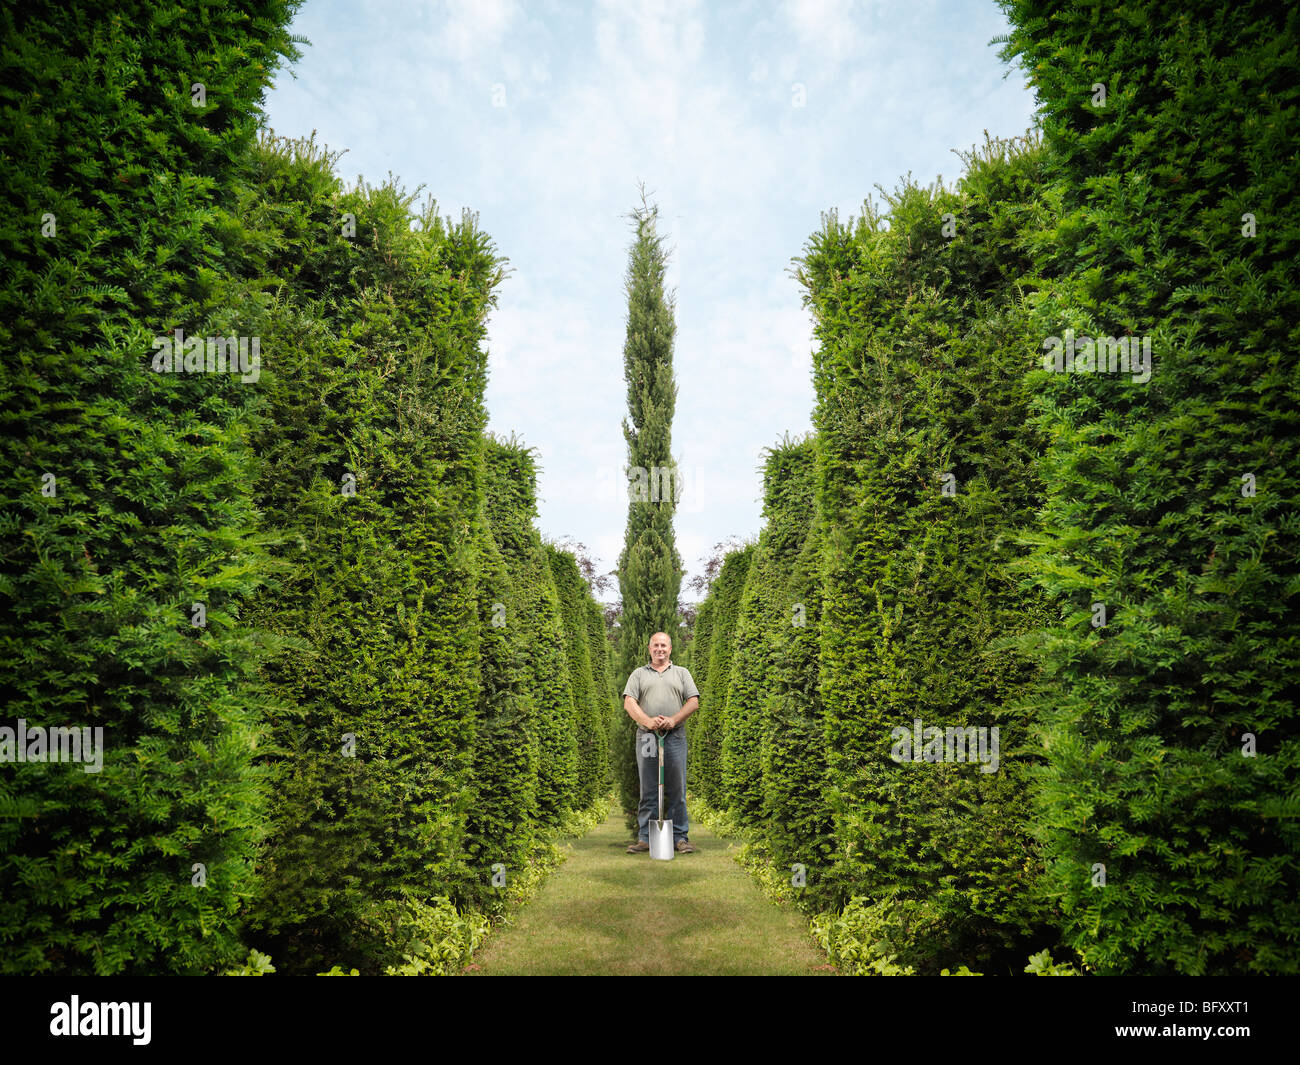 Gardener With Spade And Evergreen Trees - Stock Image